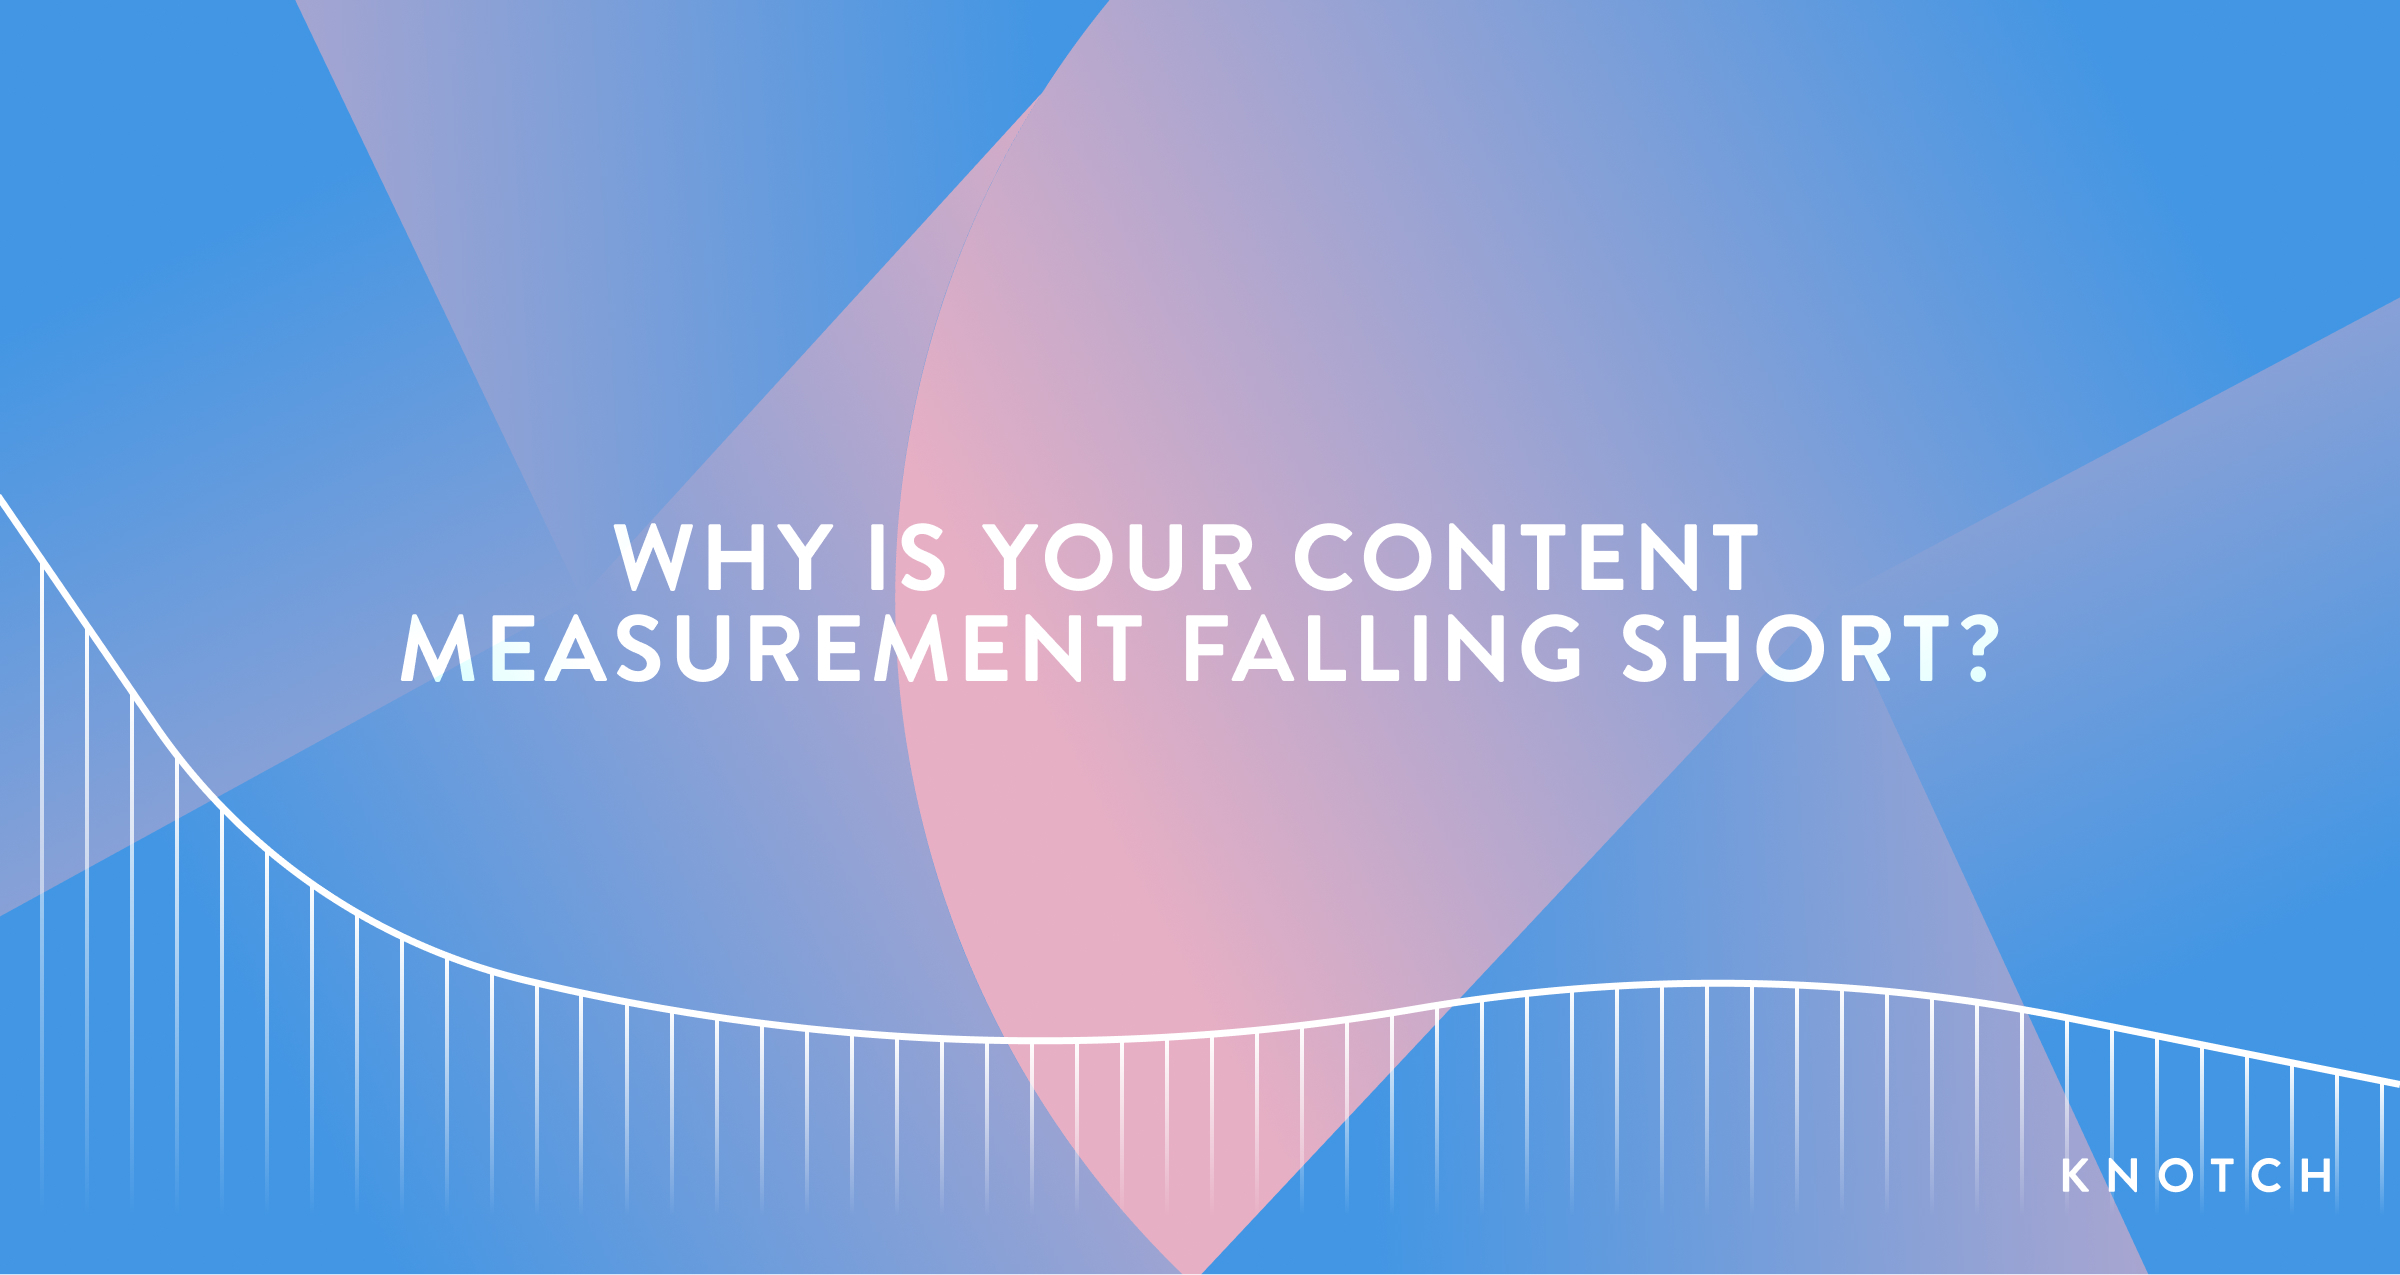 Why Is Your Content Measurement Falling Short?